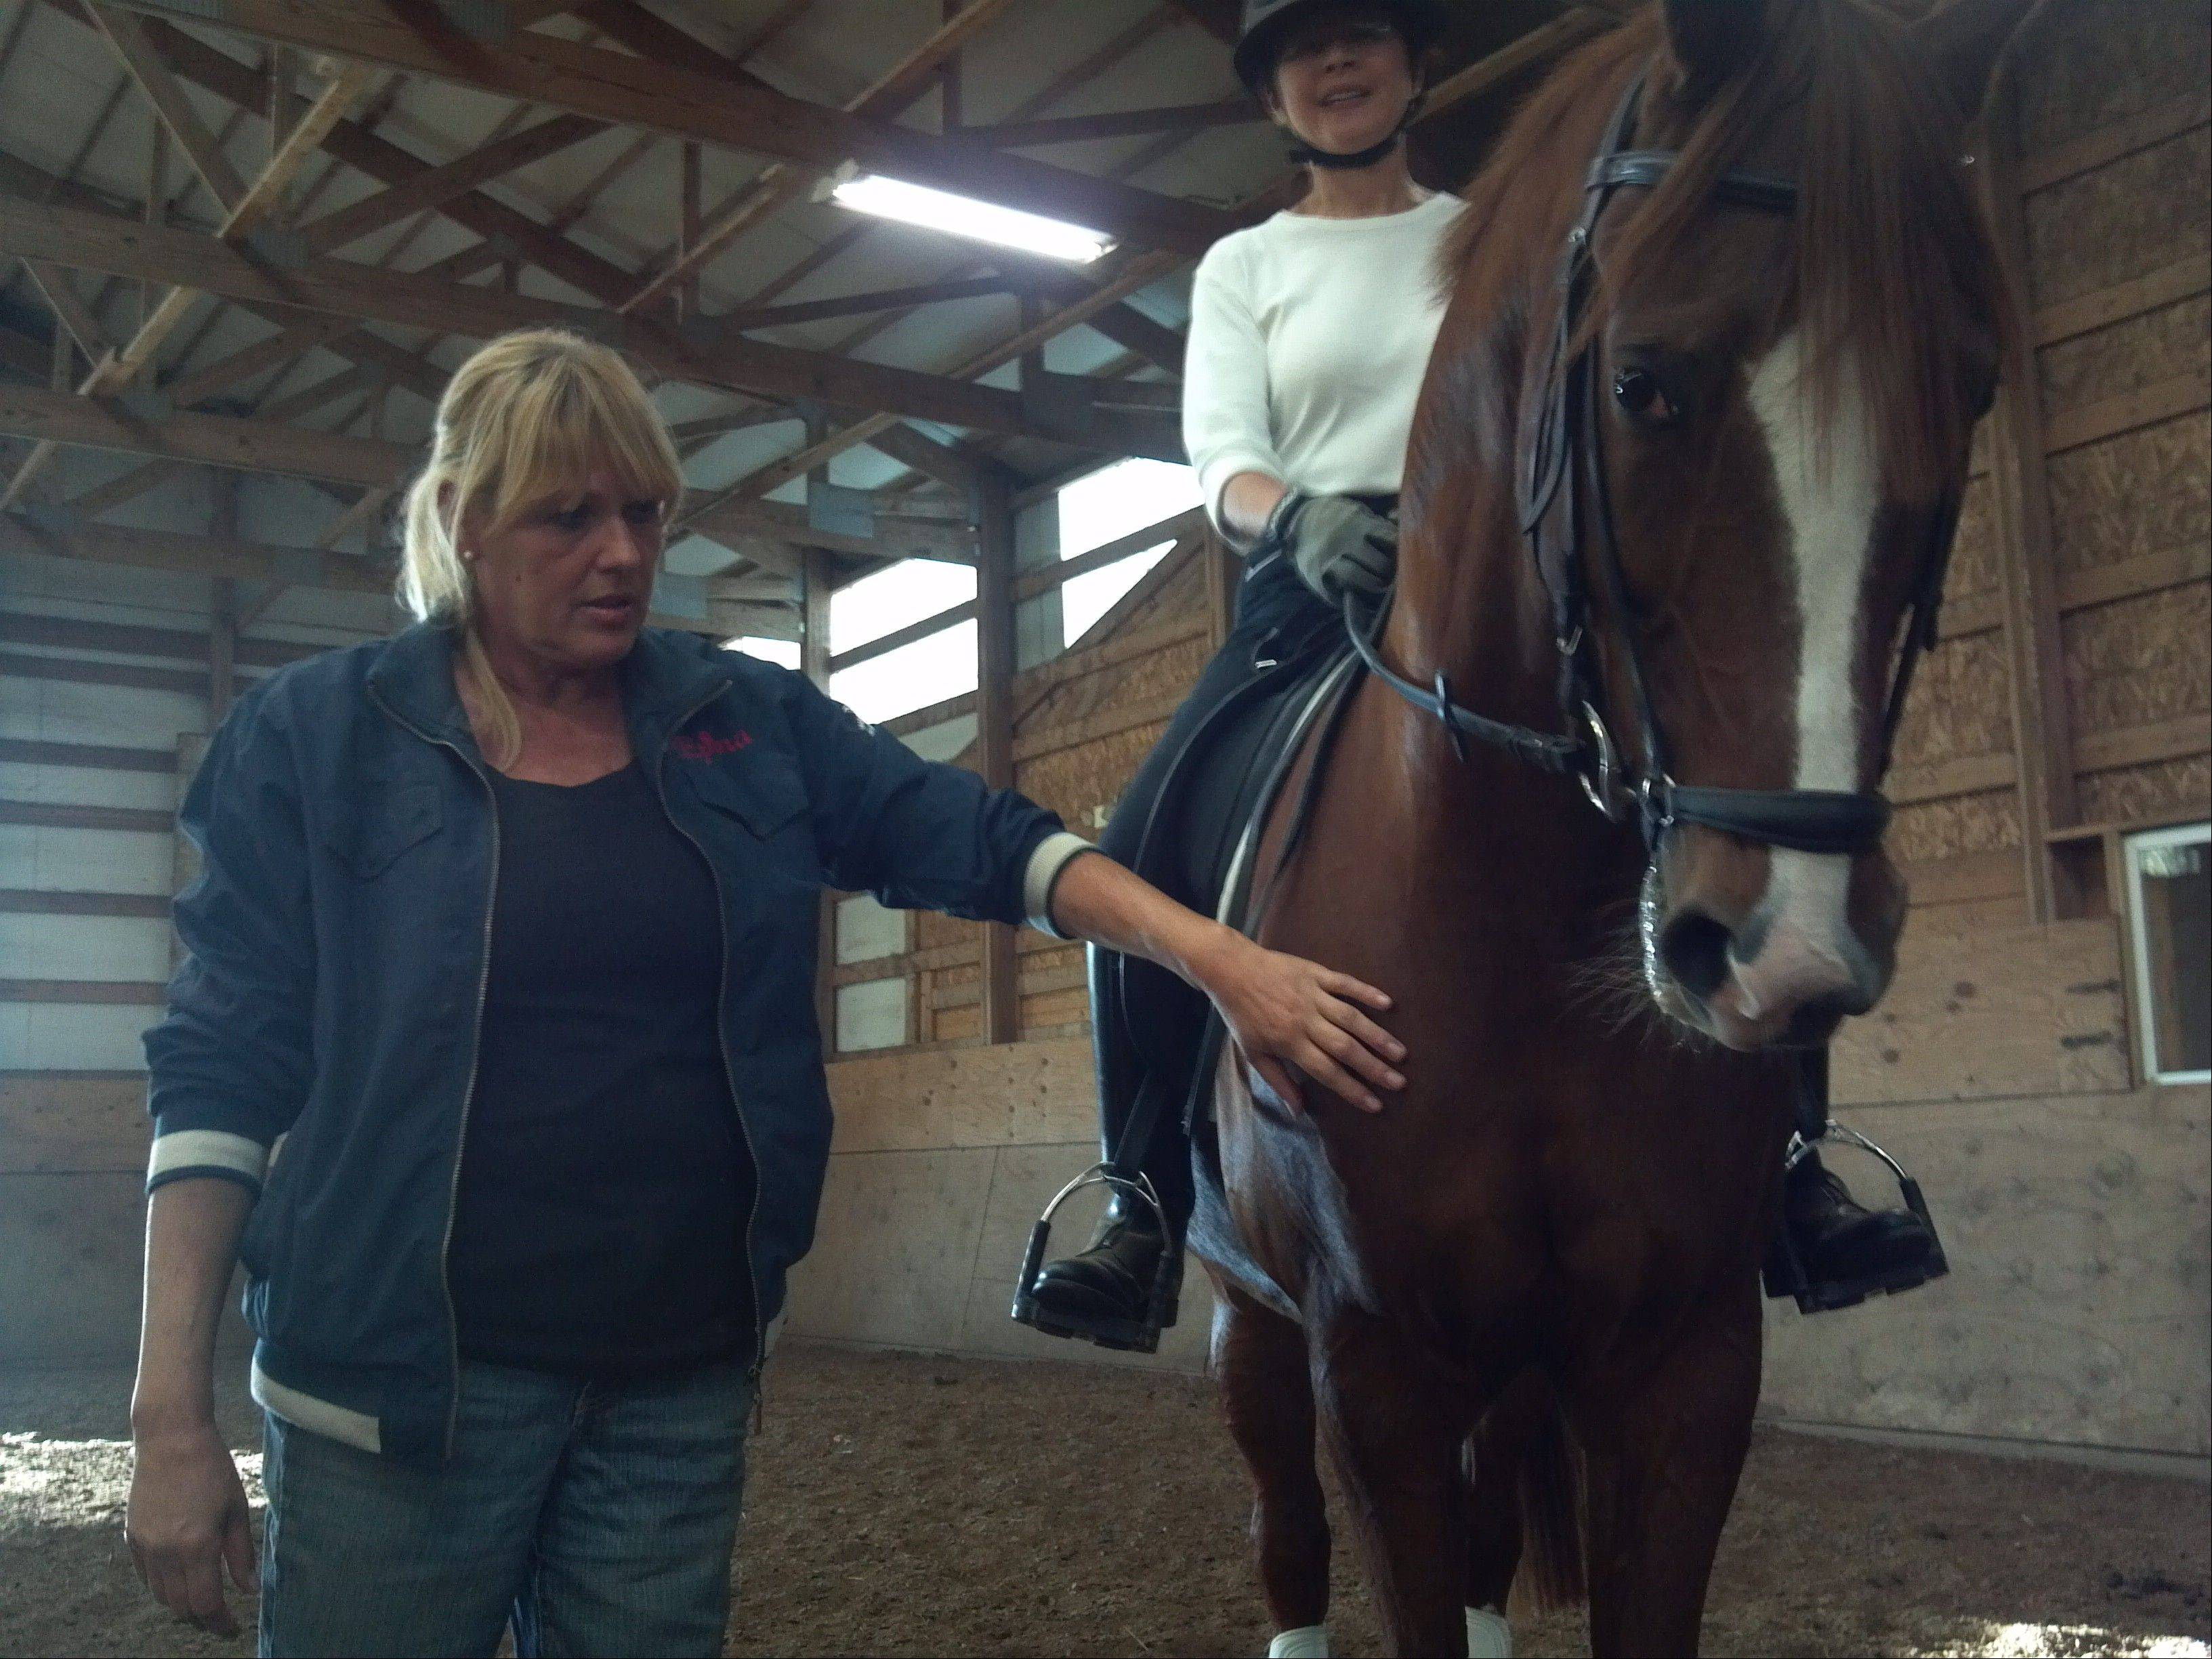 Dora Christensen, left, operator of Epona Farm in Maple Park, sued her neighbor, claiming his motocross track is spooking her horses and ruining her business.